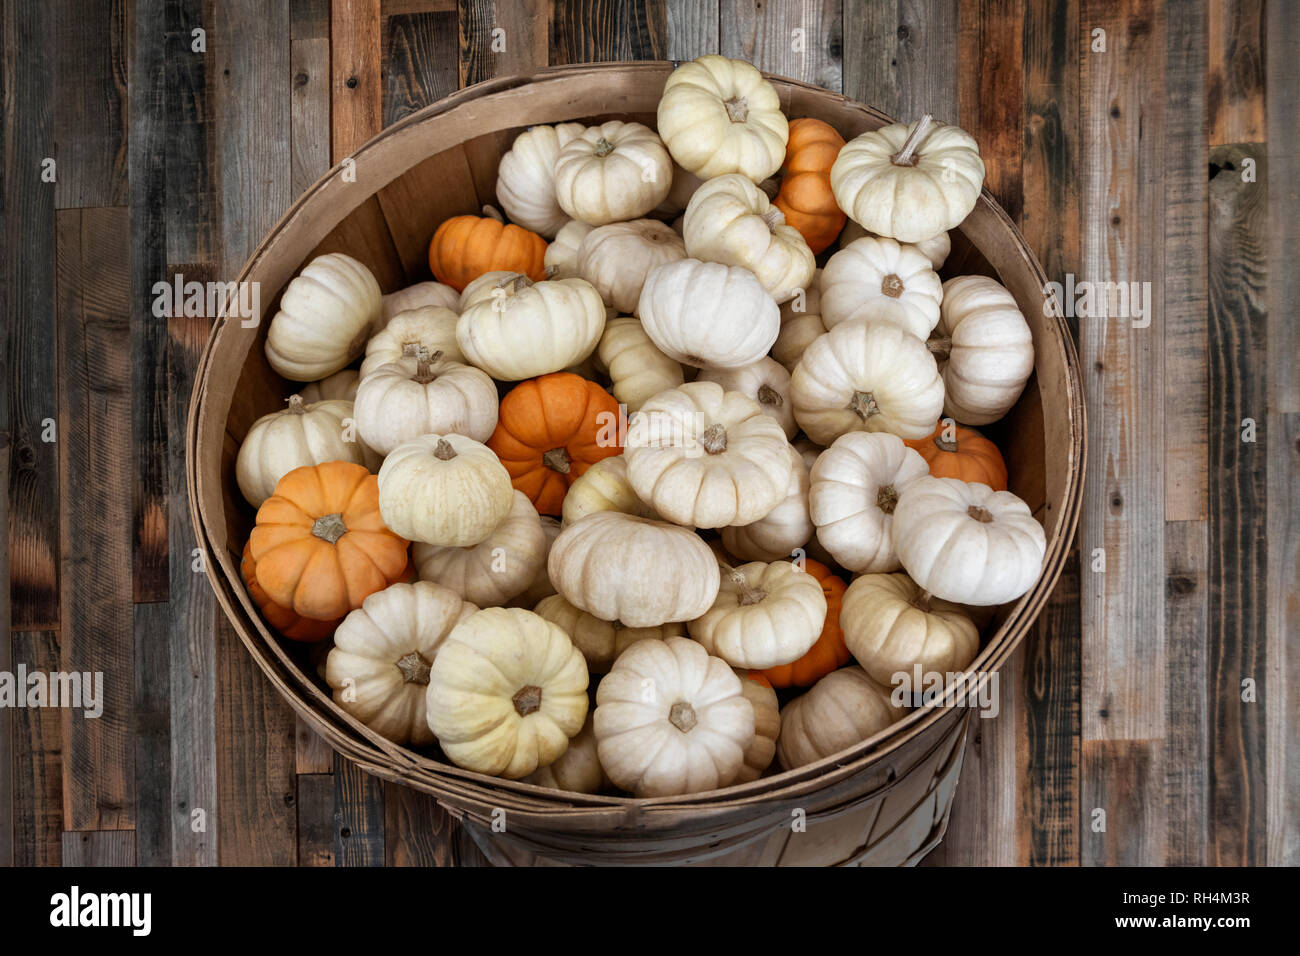 Small white mini pumpkins in a wooden basket Stock Photo